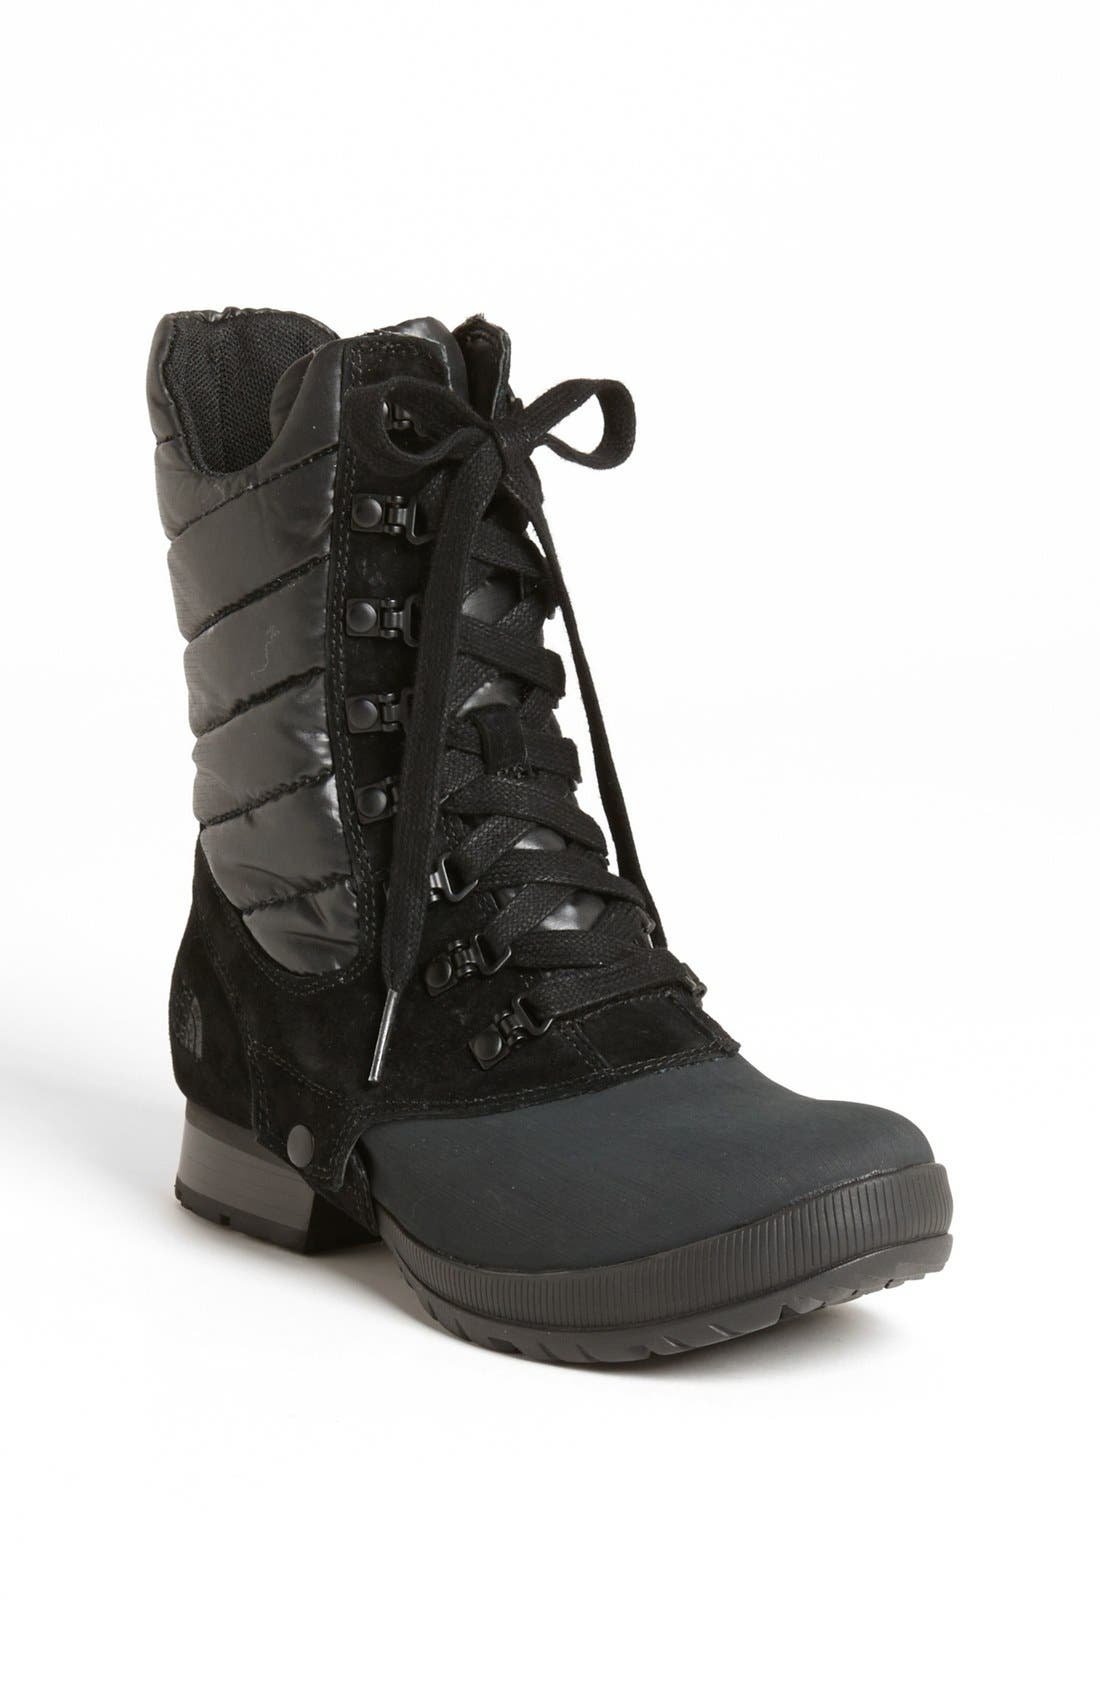 Main Image - The North Face 'Zophia' Boot